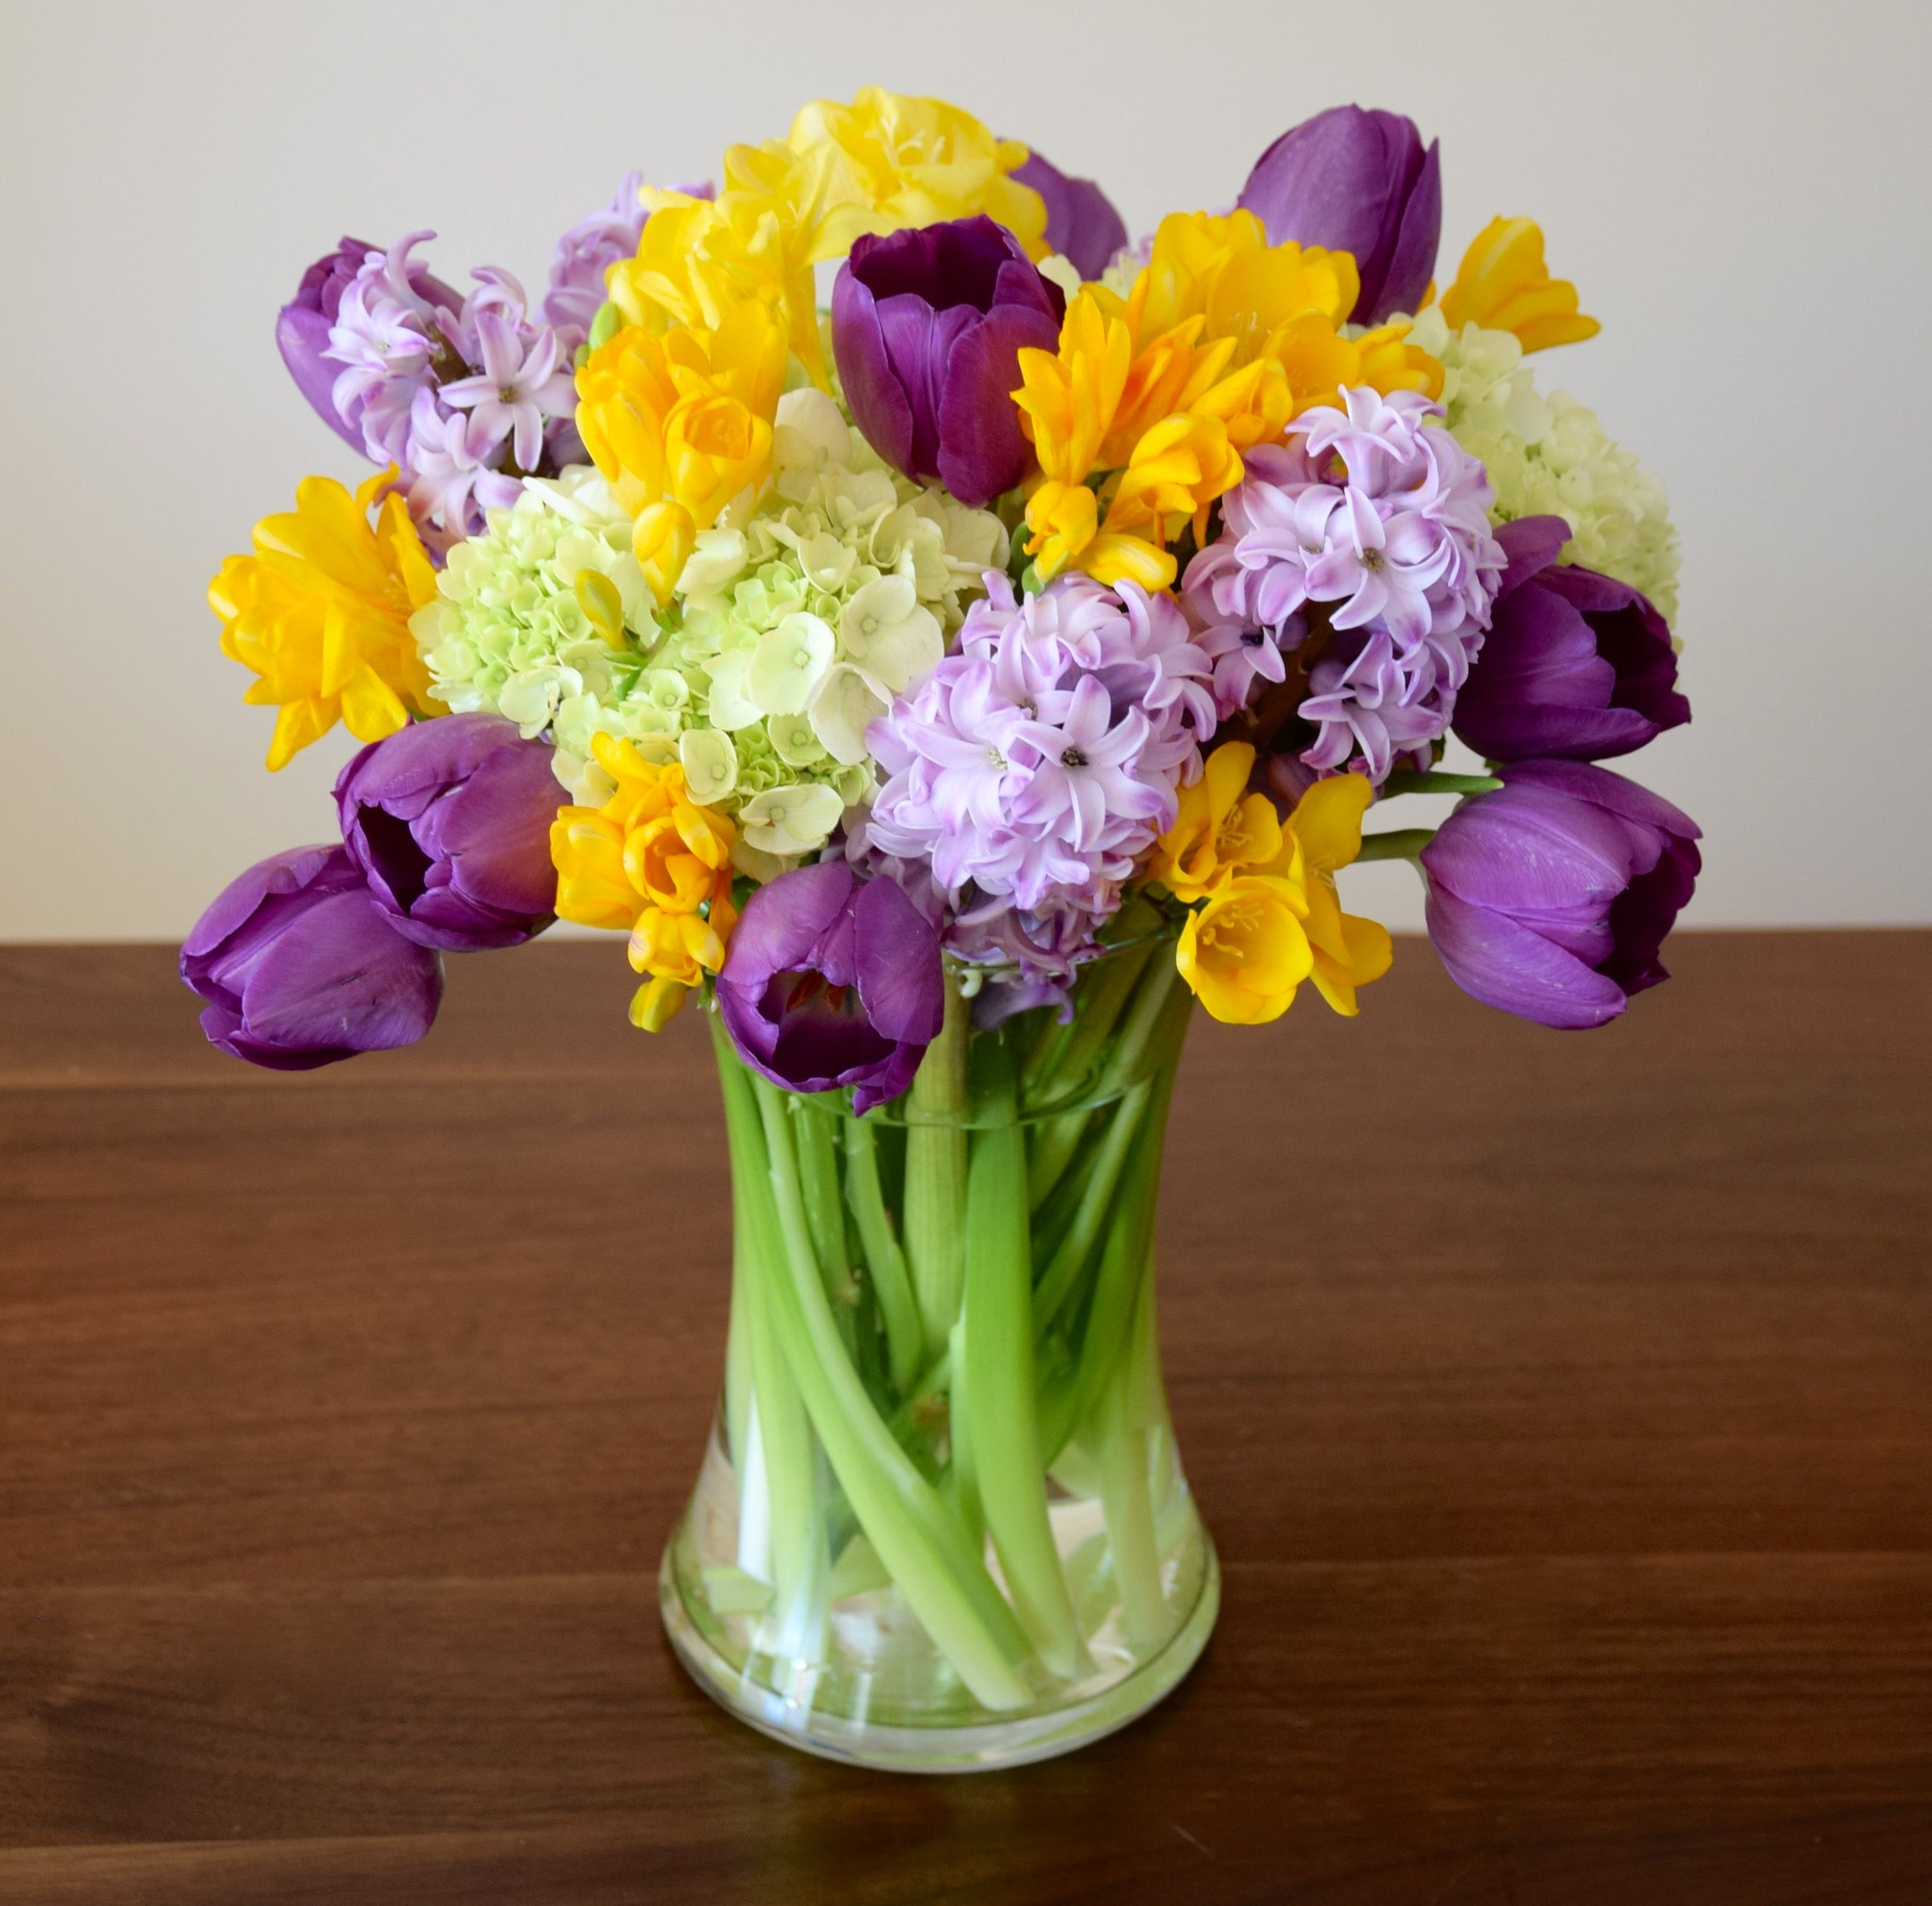 Colorful arrangement with hydrangeas hyacinths tulips and freesia colorful arrangement with hydrangeas hyacinths tulips and freesia izmirmasajfo